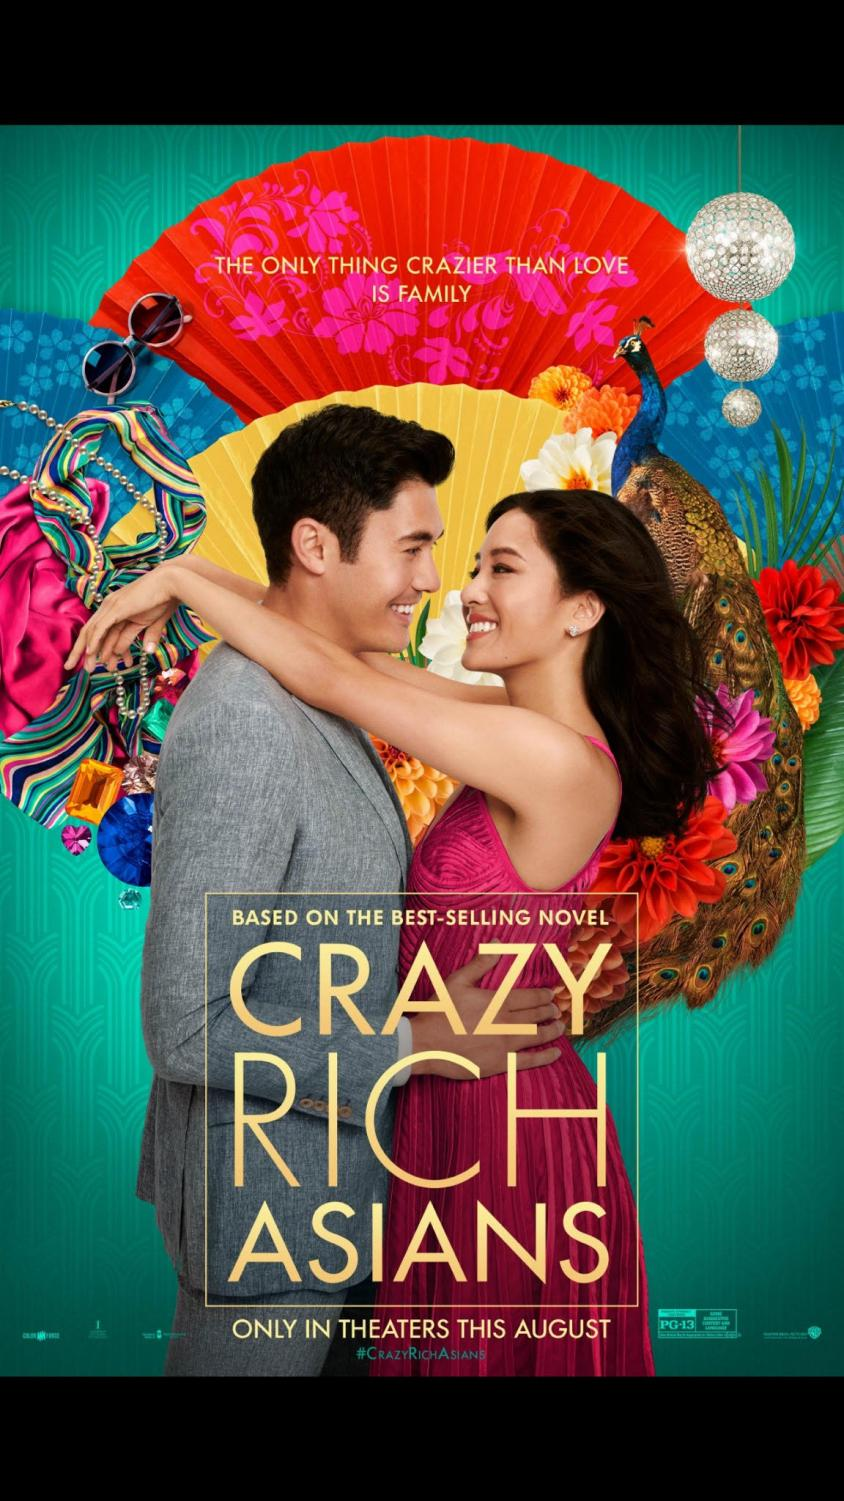 Nick Young and Rachel Chu, snuggle up for The Crazy Rich Asians movie poster.